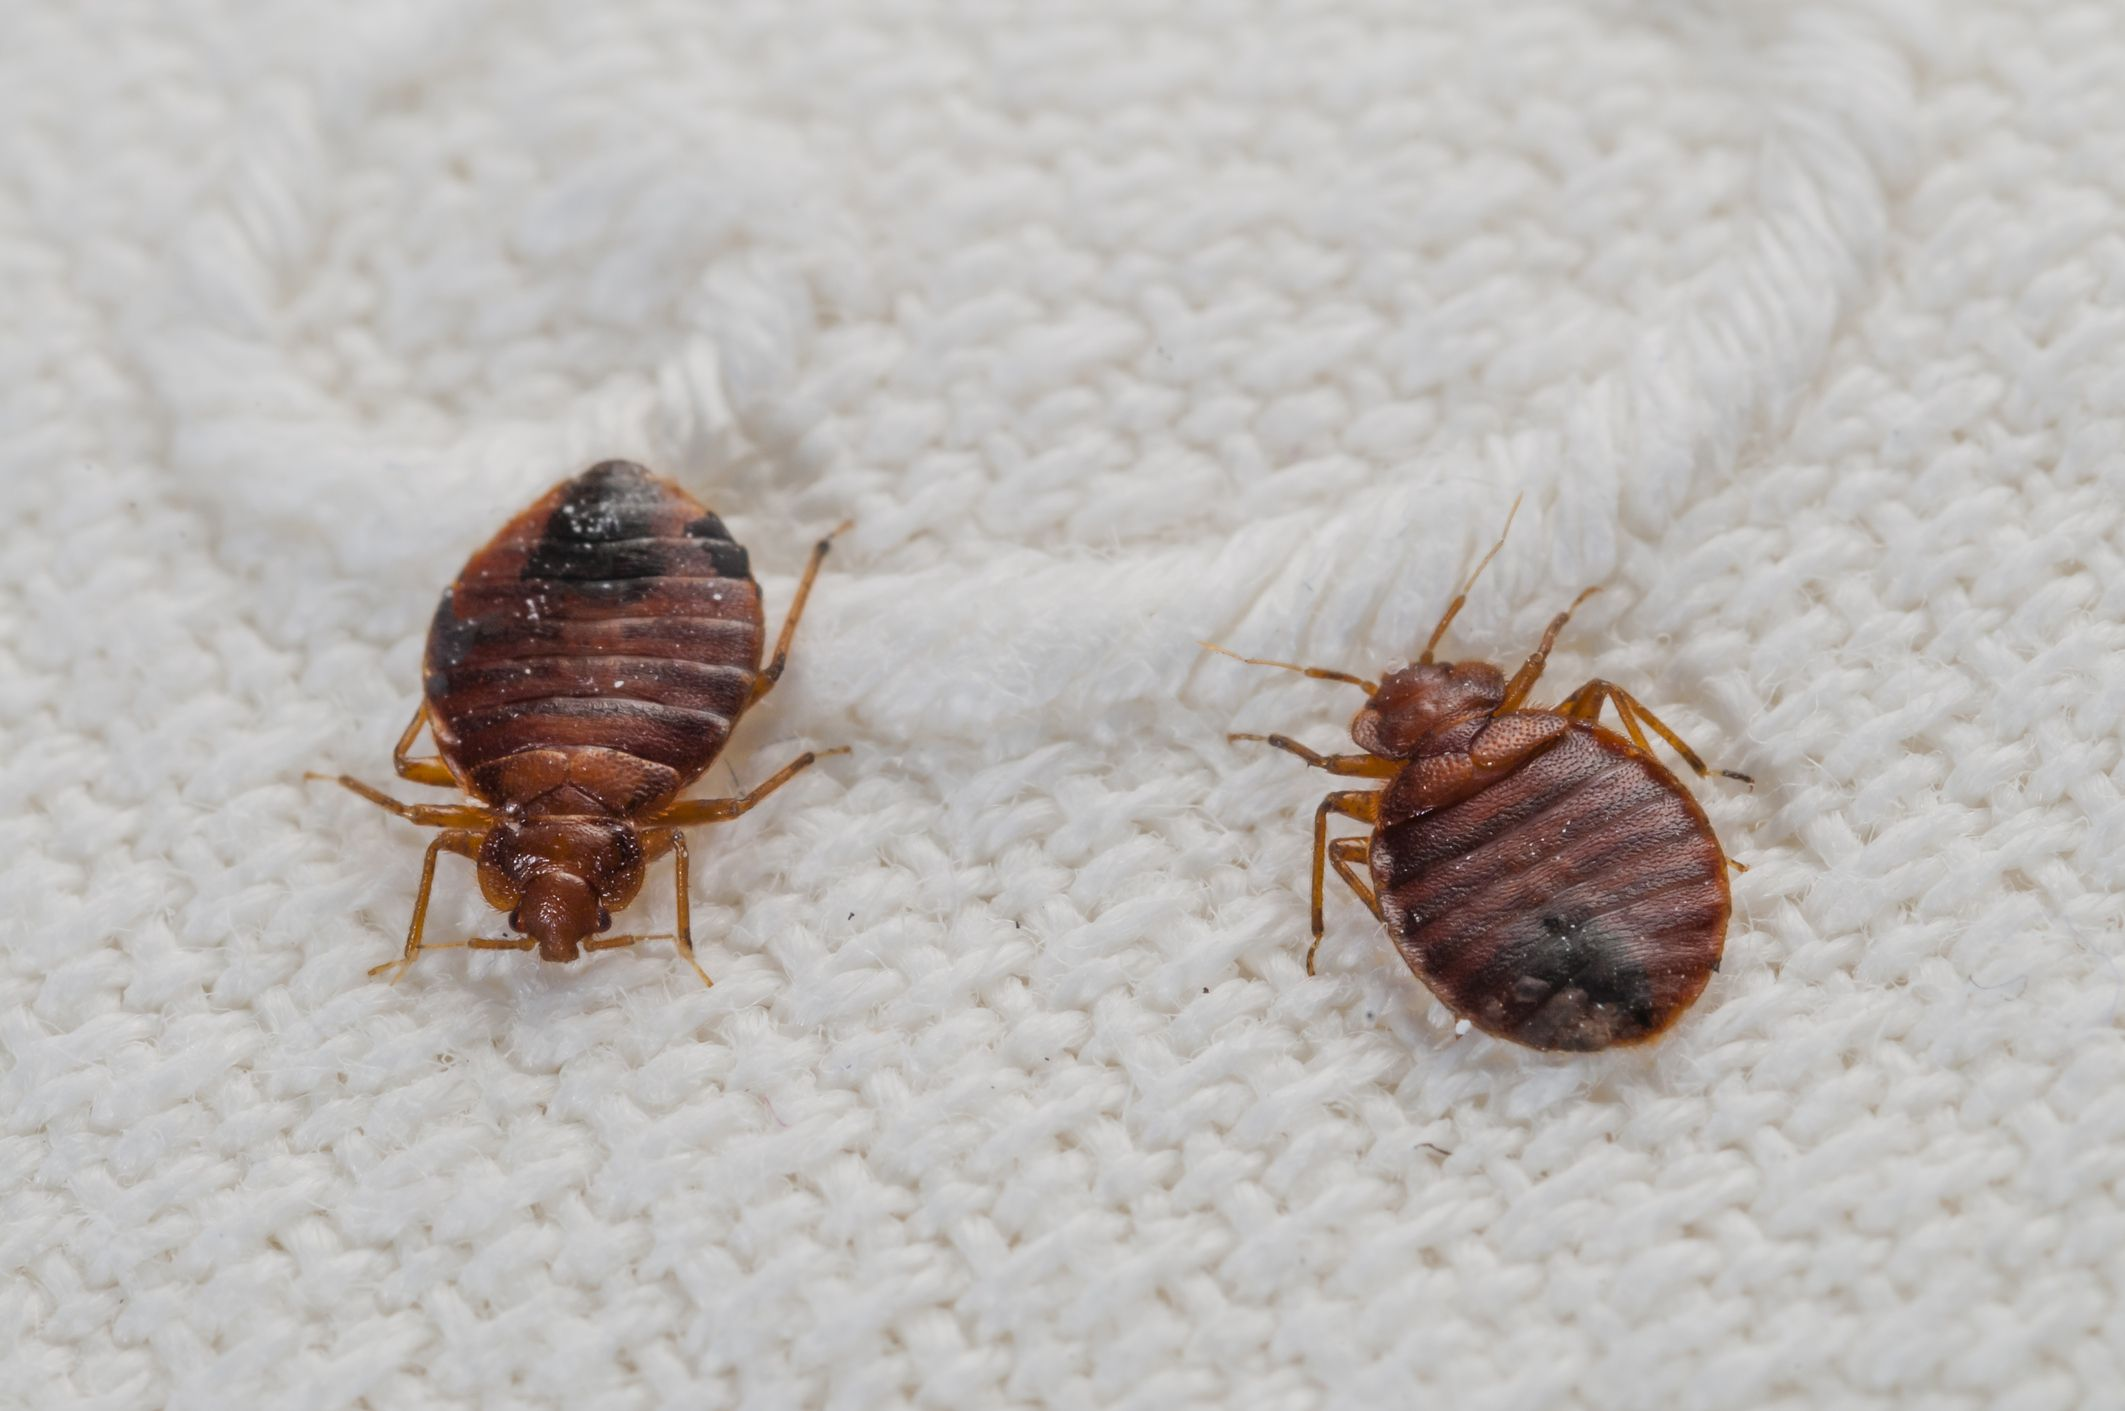 Where Do Bedbugs Come From How To Get Rid Of Bedbugs